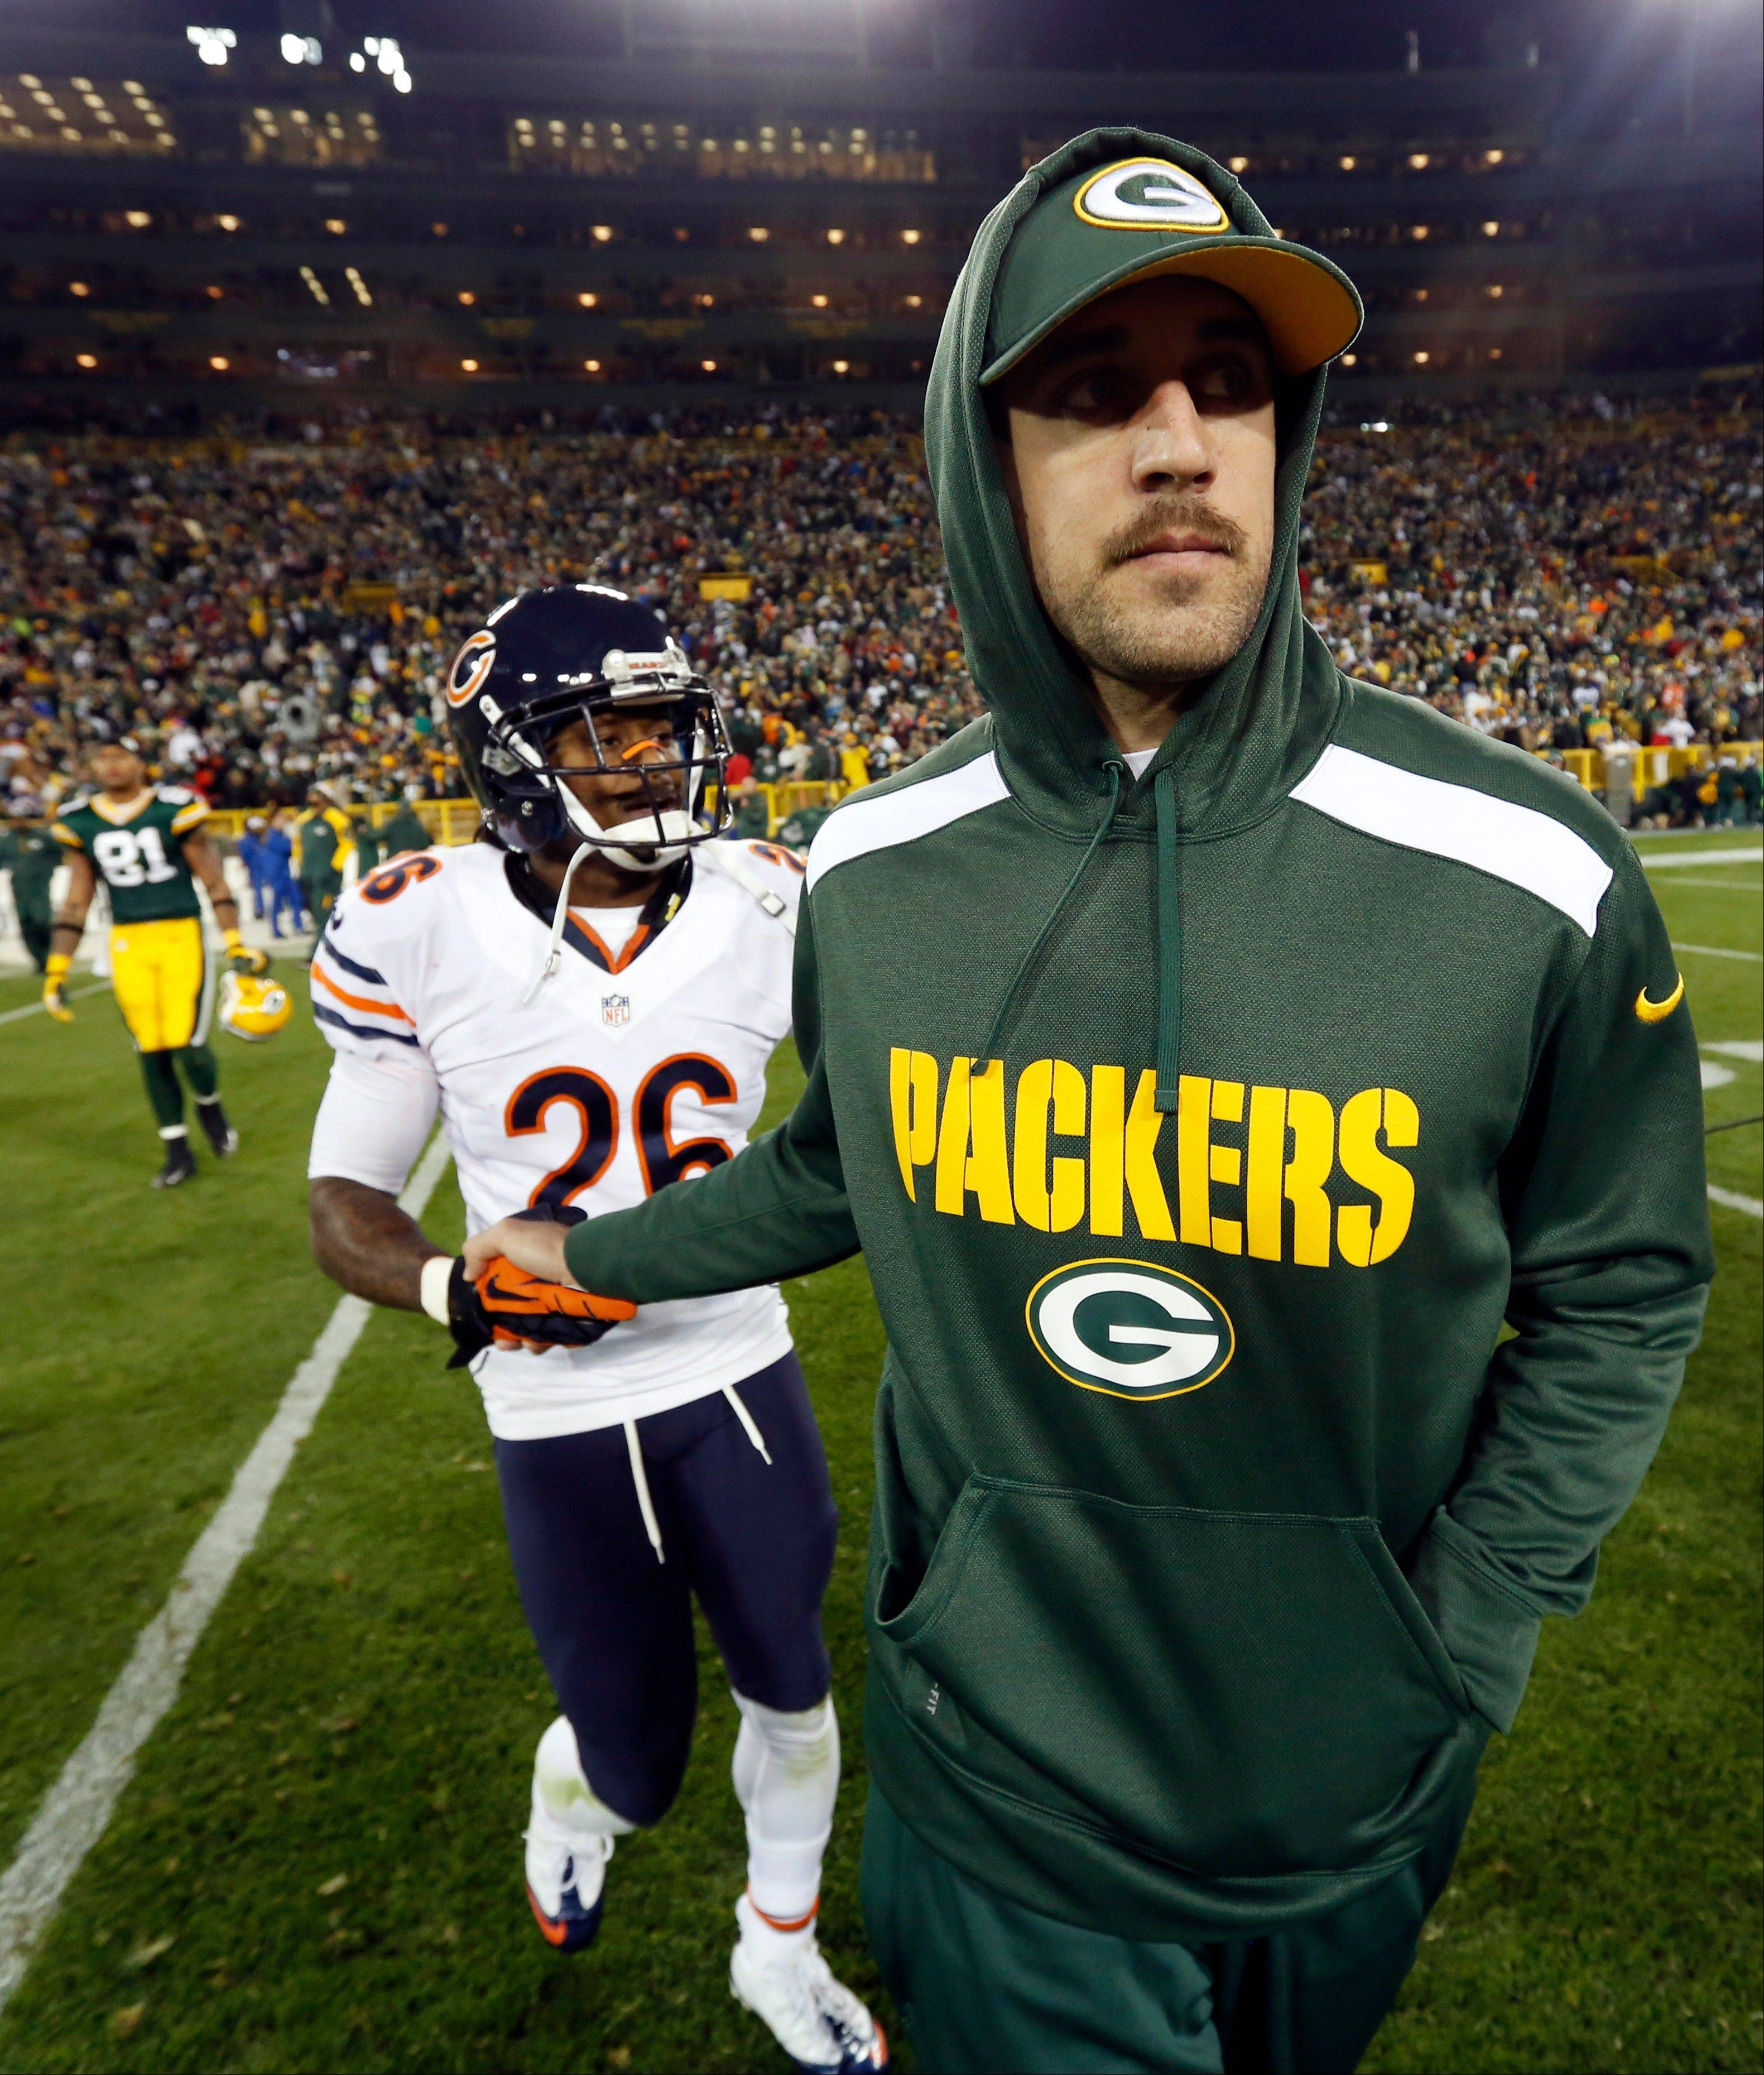 Green Bay Packers quarterback Aaron Rodgers shakes hands with the Bears' Tim Jennings after Monday night's game at Lambeau Field.